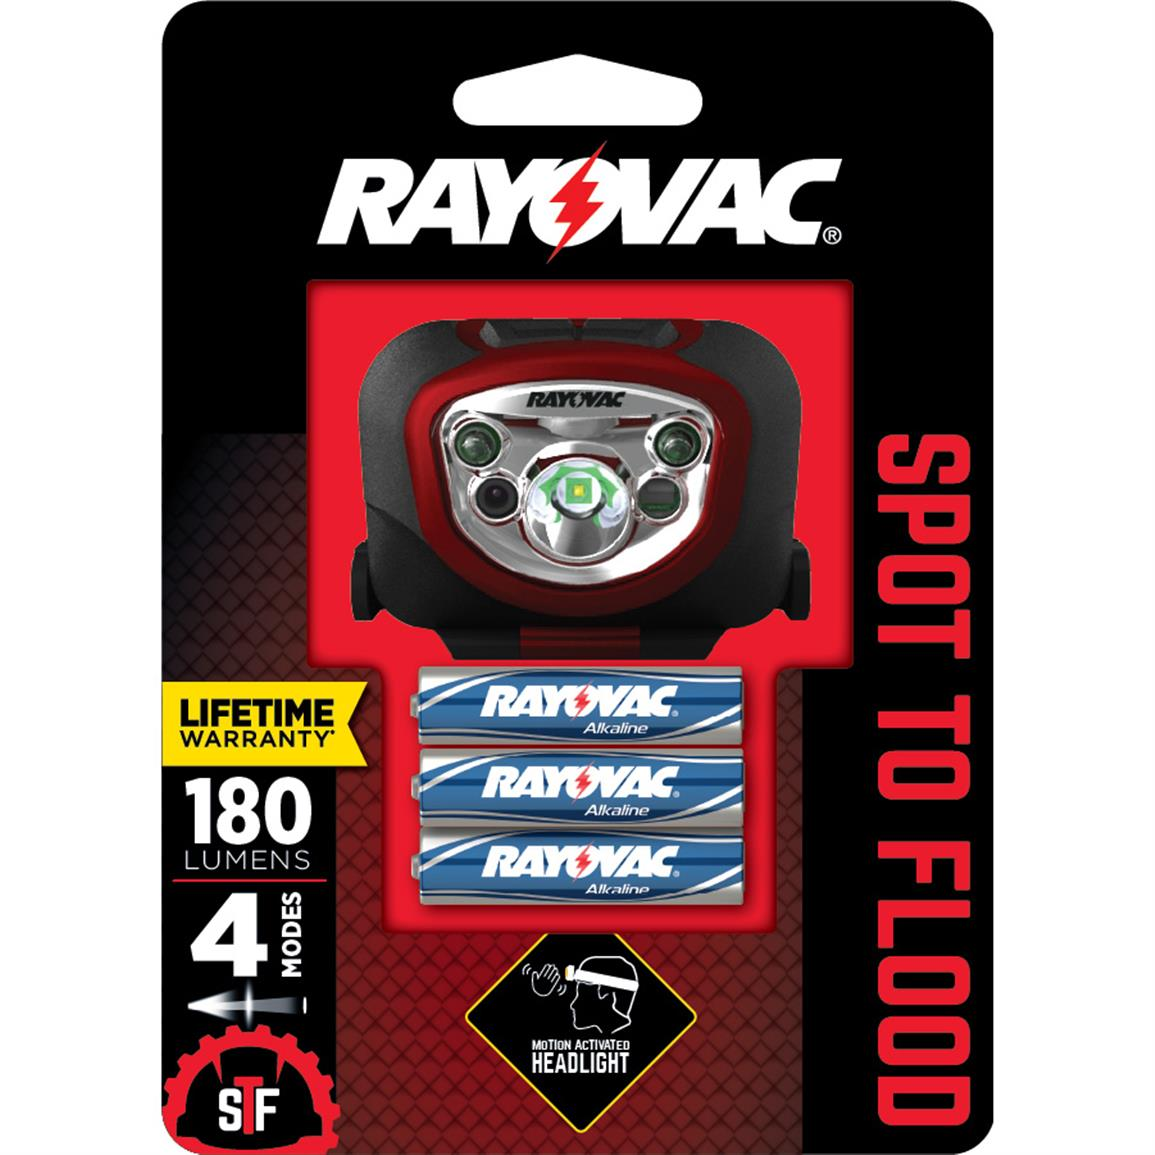 Rayovac Spot to Flood LED Headlight